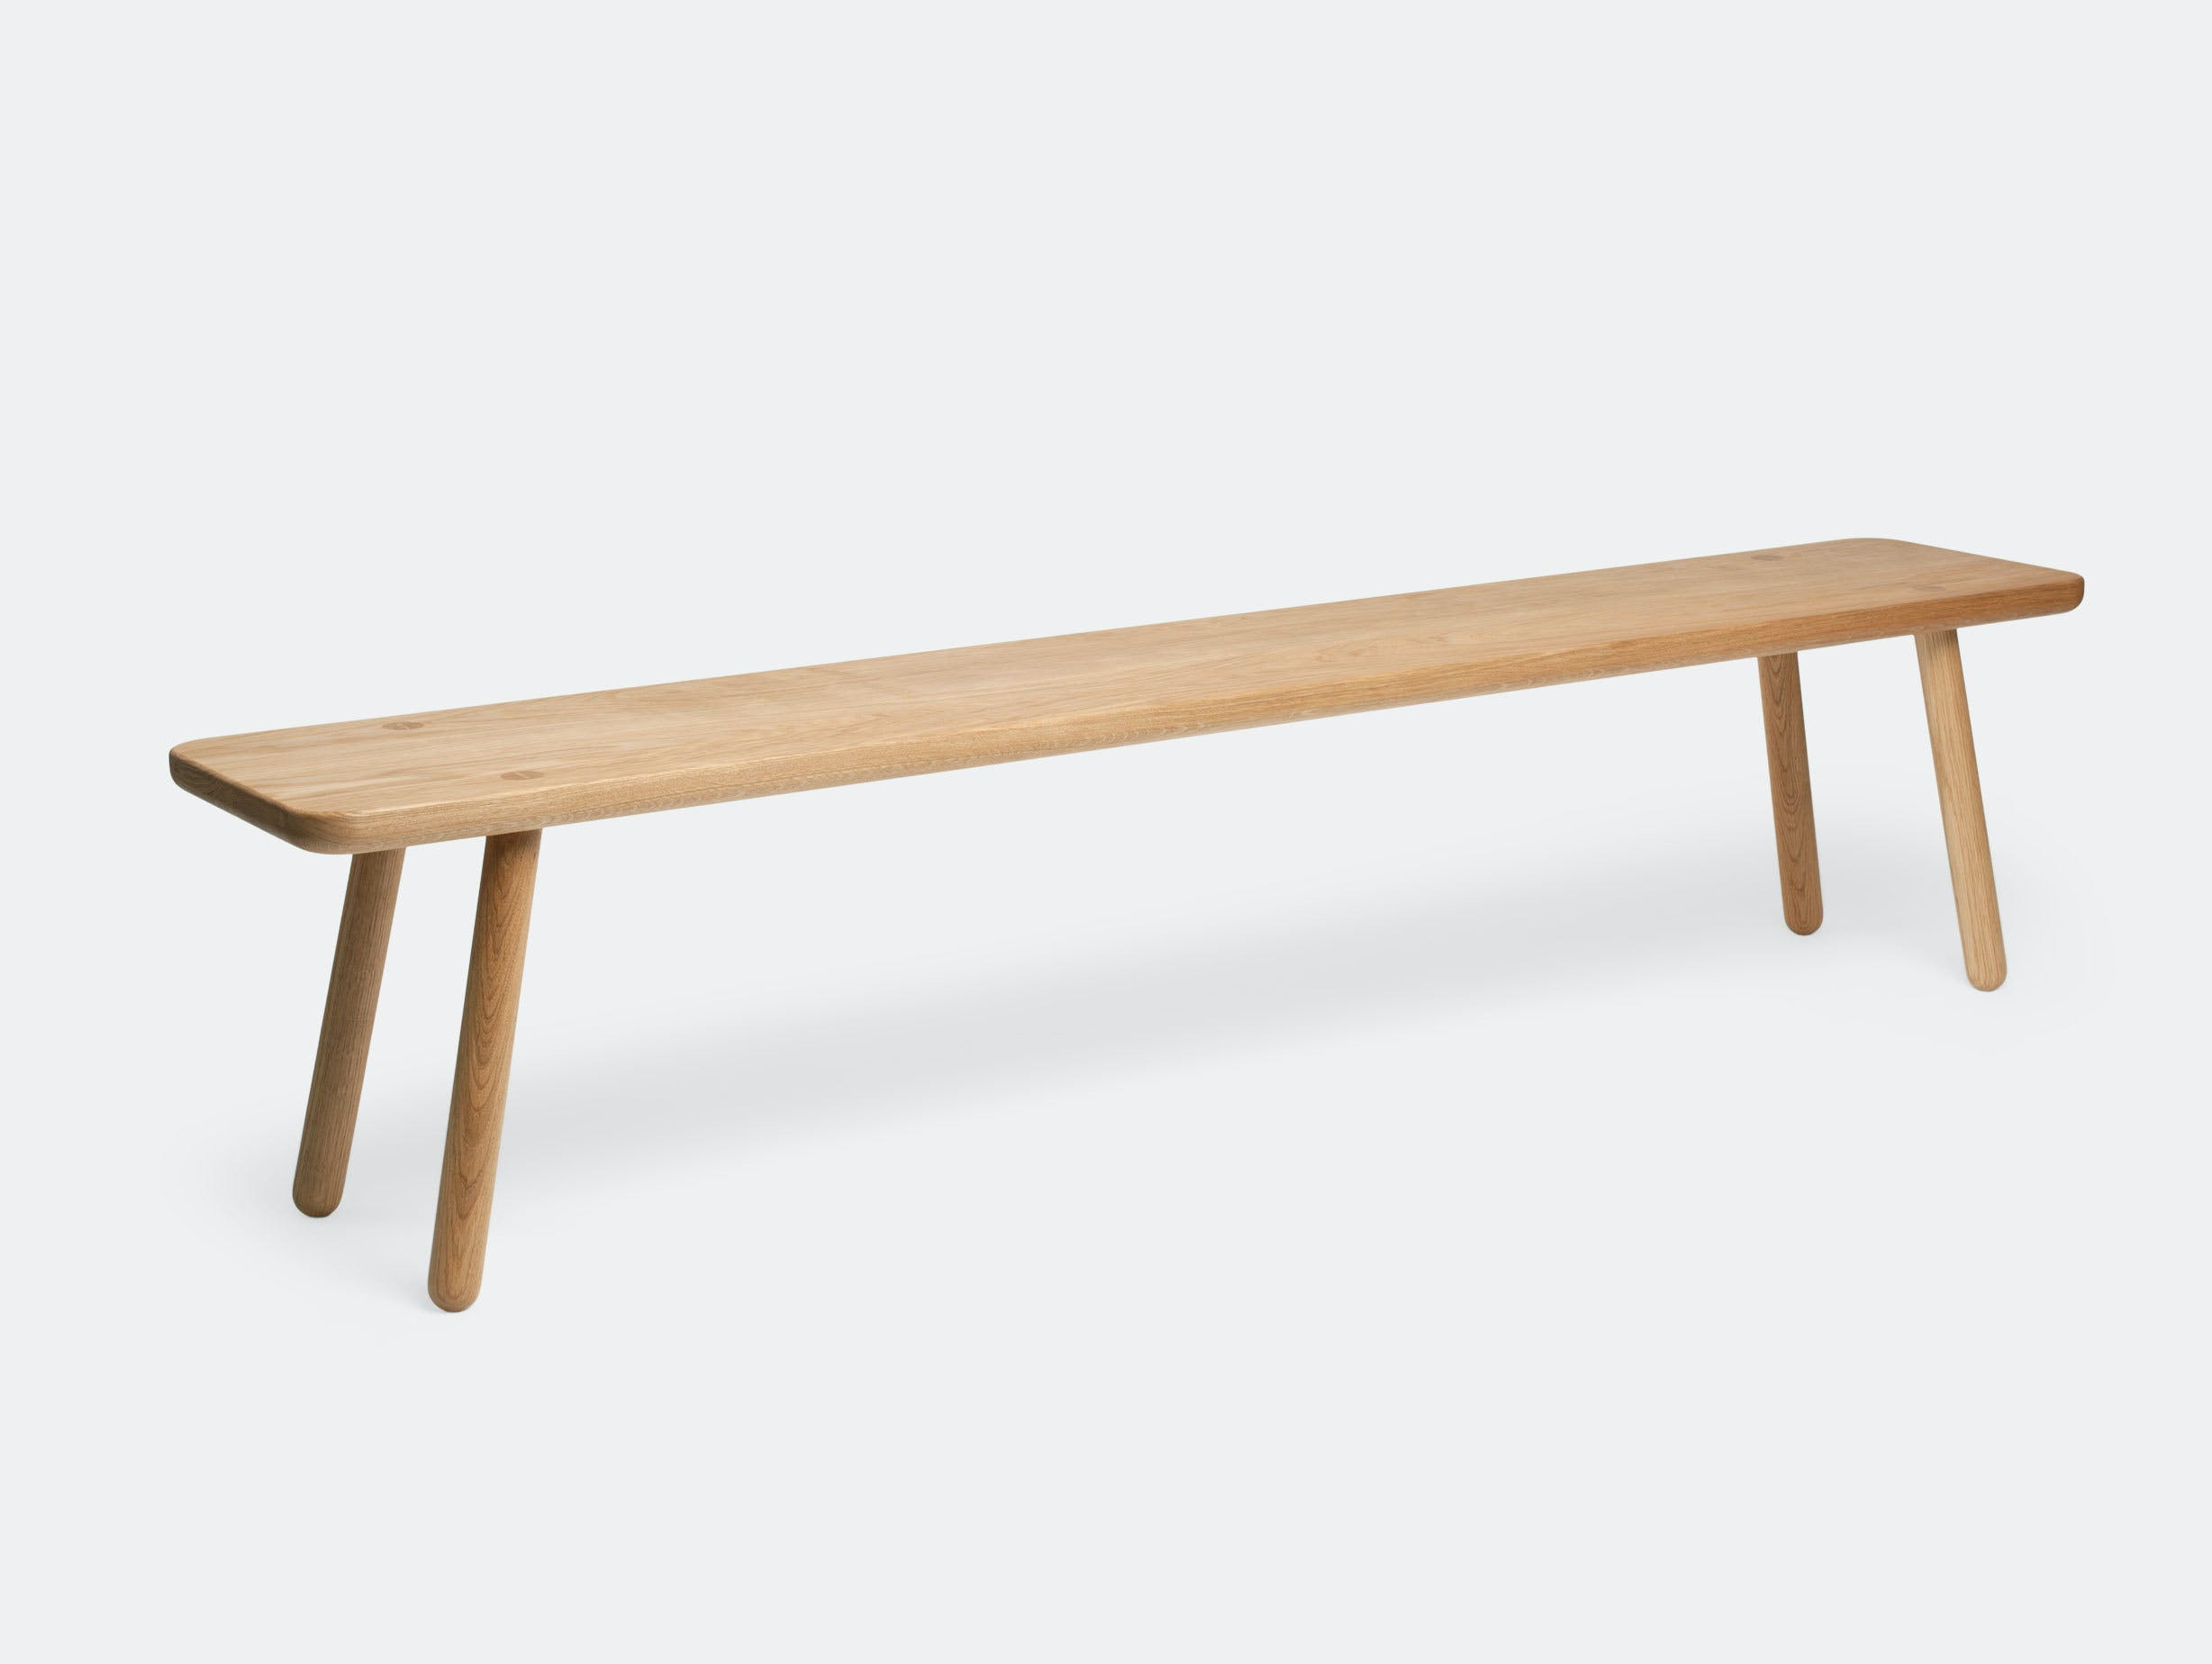 Another Country Bench One Oak L 200 cm